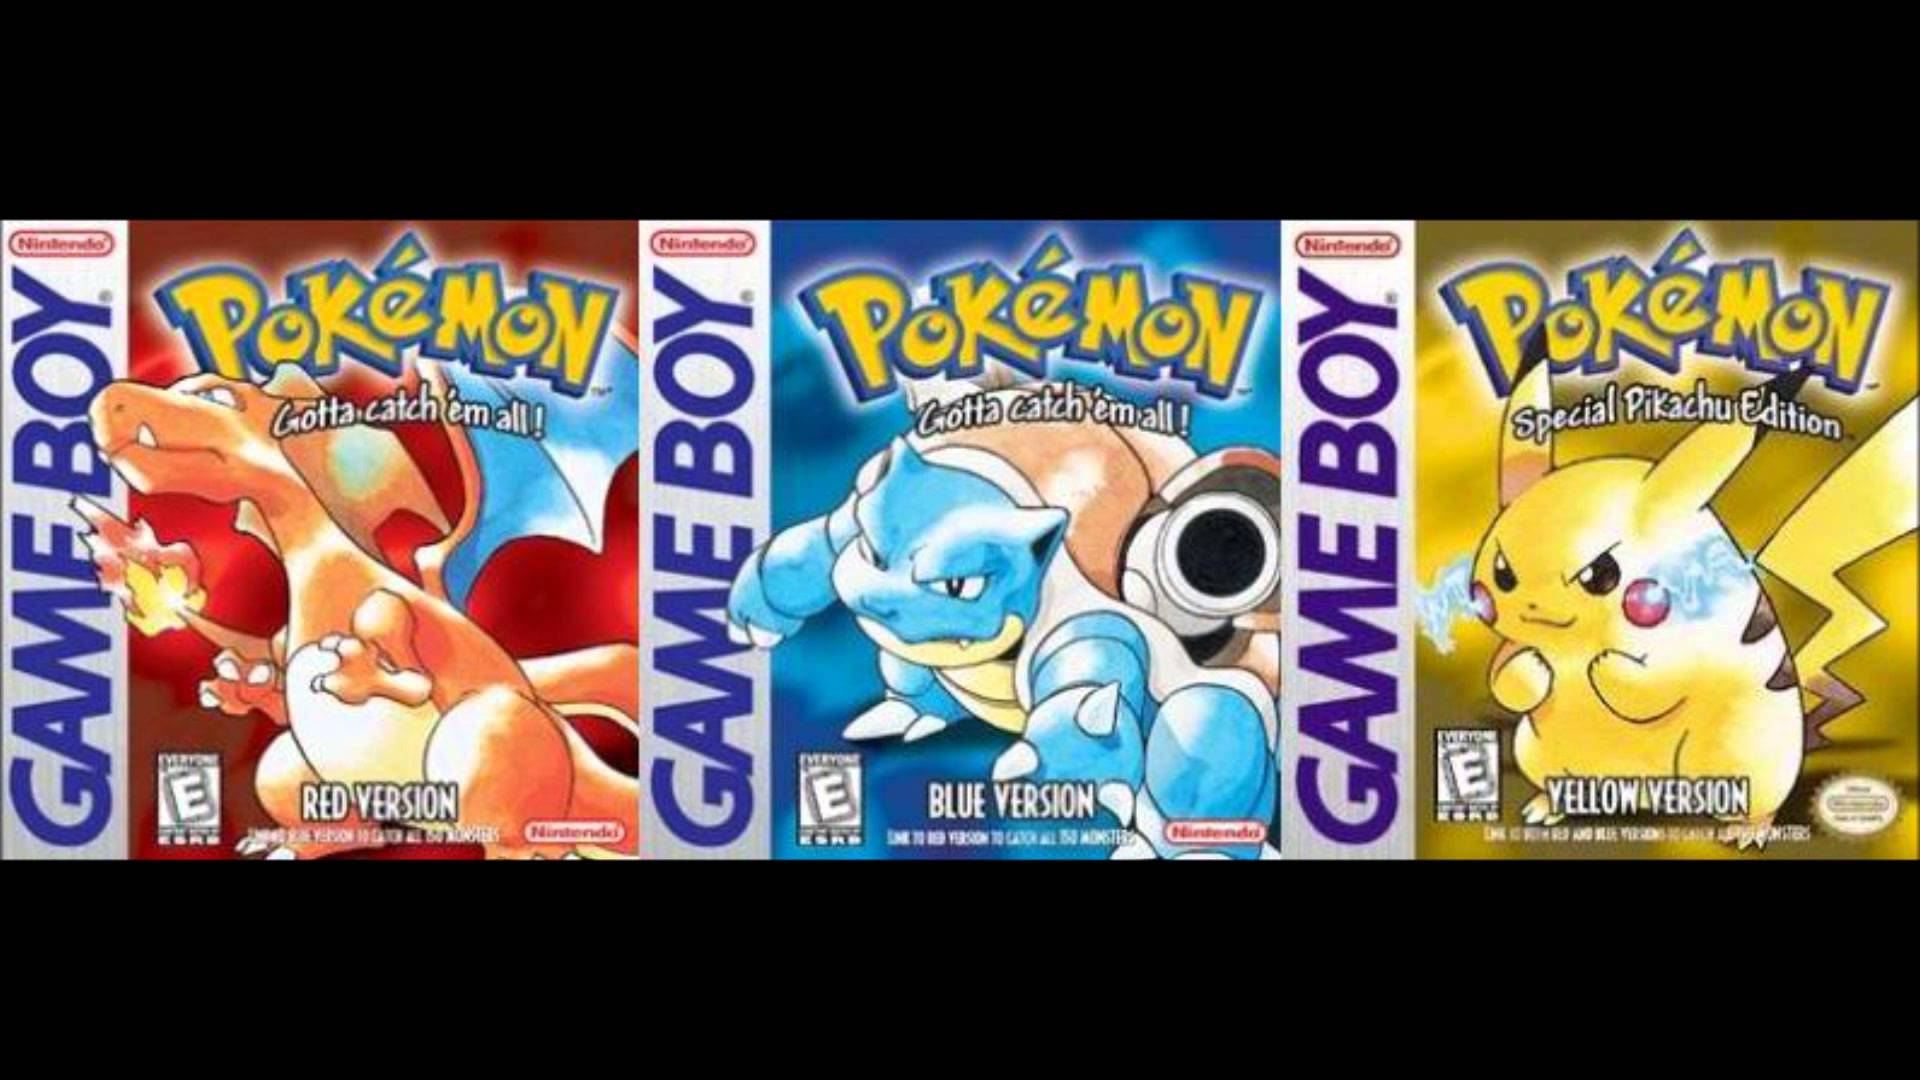 Modojo | Prepare For Nostalgia With This Pokémon Red, Blue, and Yellow Trailer